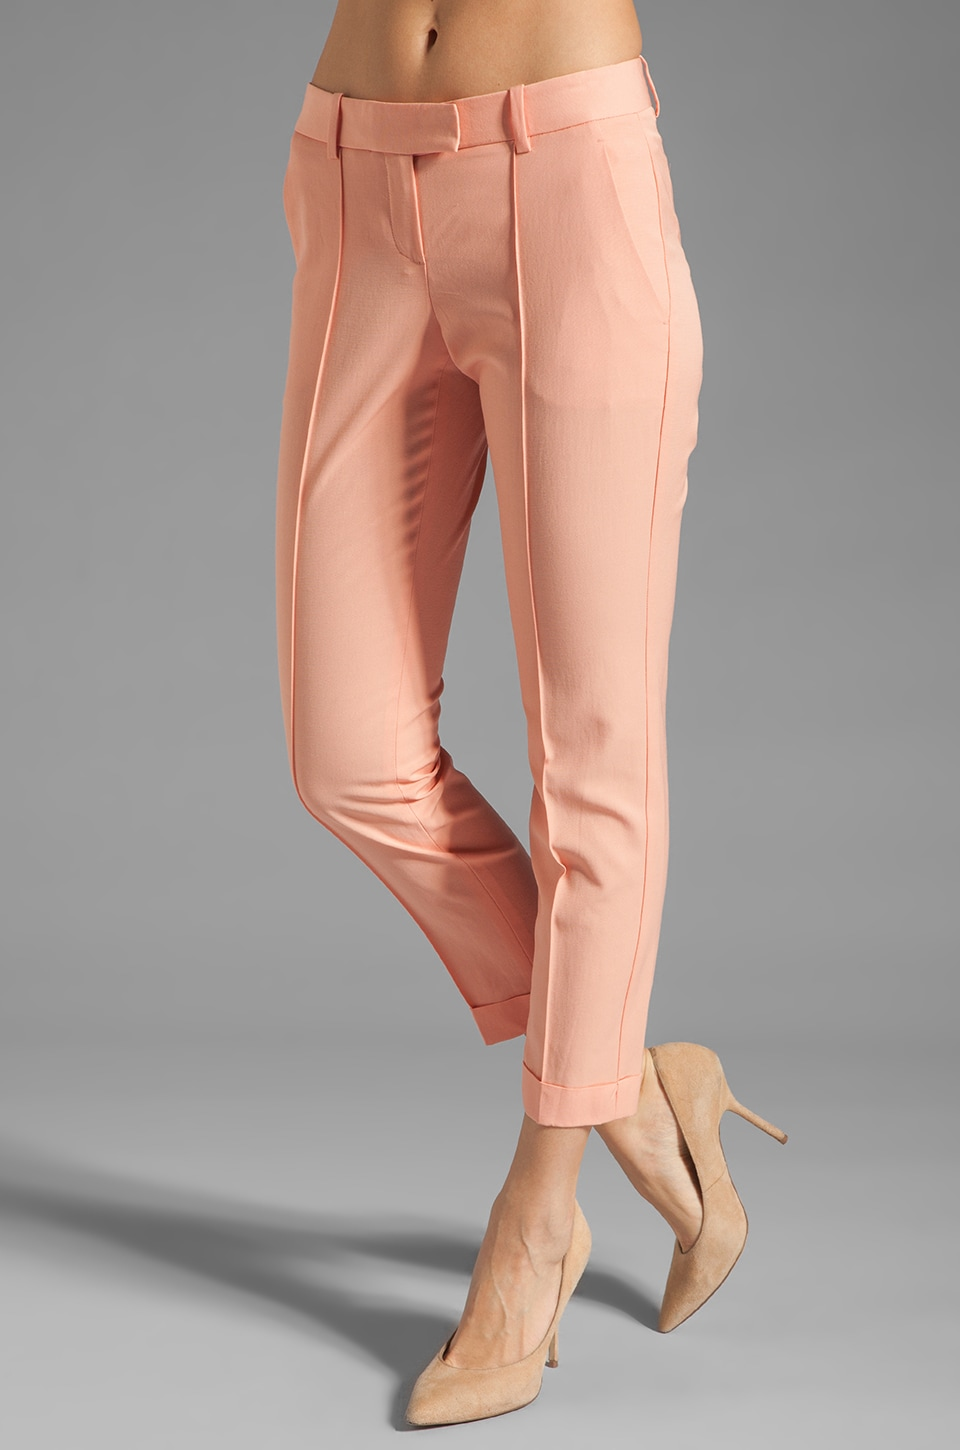 Theory Marsienna T Pant in Melon